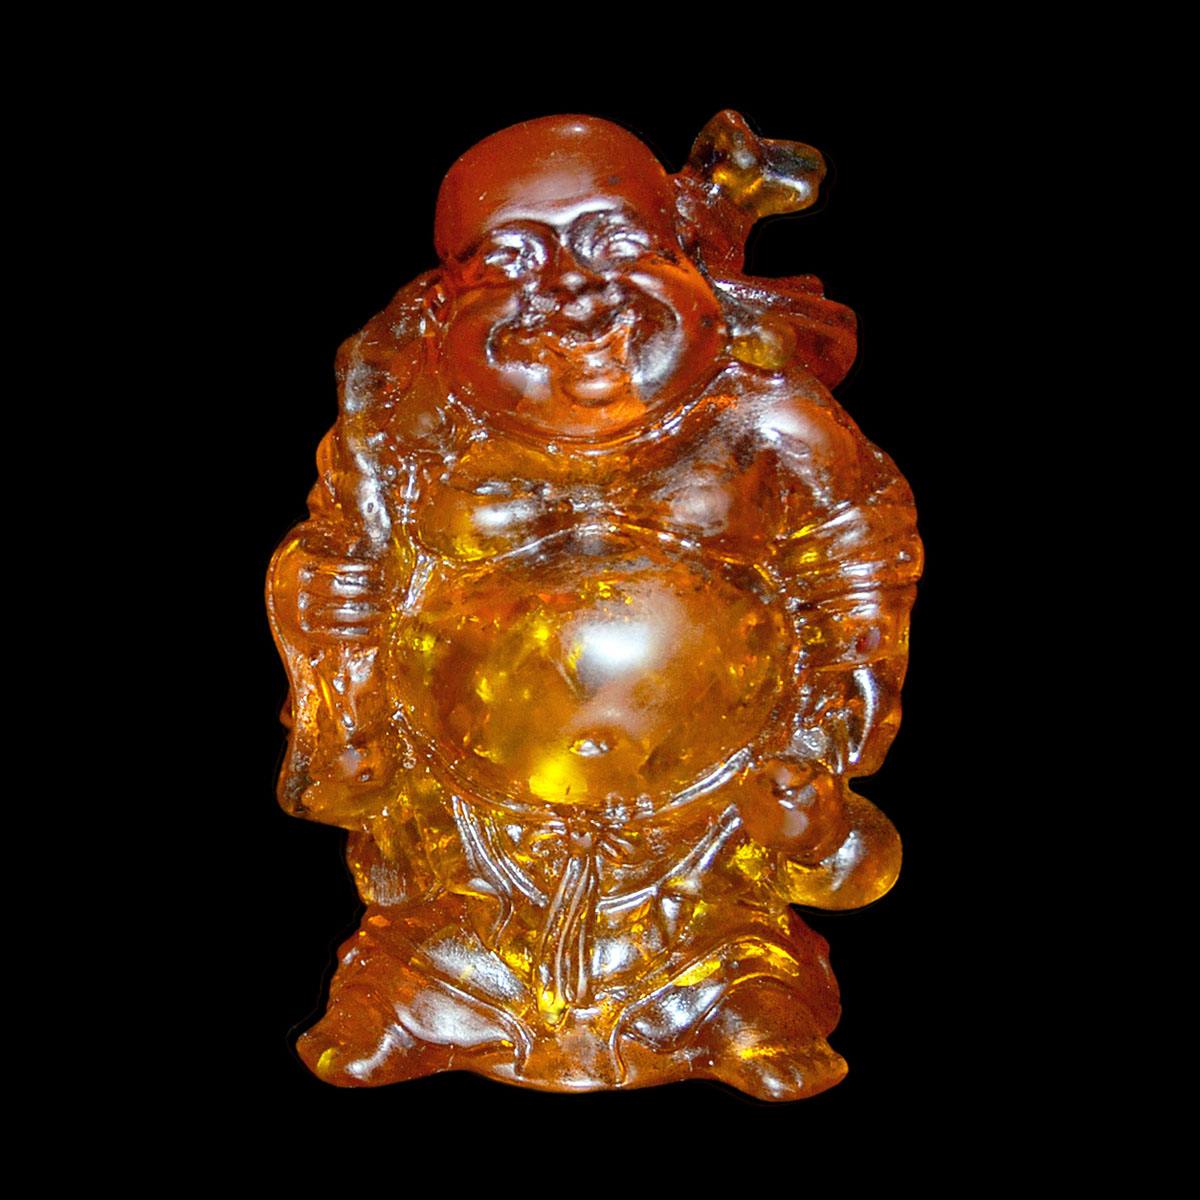 Lot 55 - 琥珀雕布袋和尚立像 An Amber Carving of Budai Carrying His Bag. Height: 3⅜ in (8.6 cm)  Weight: 154 g.